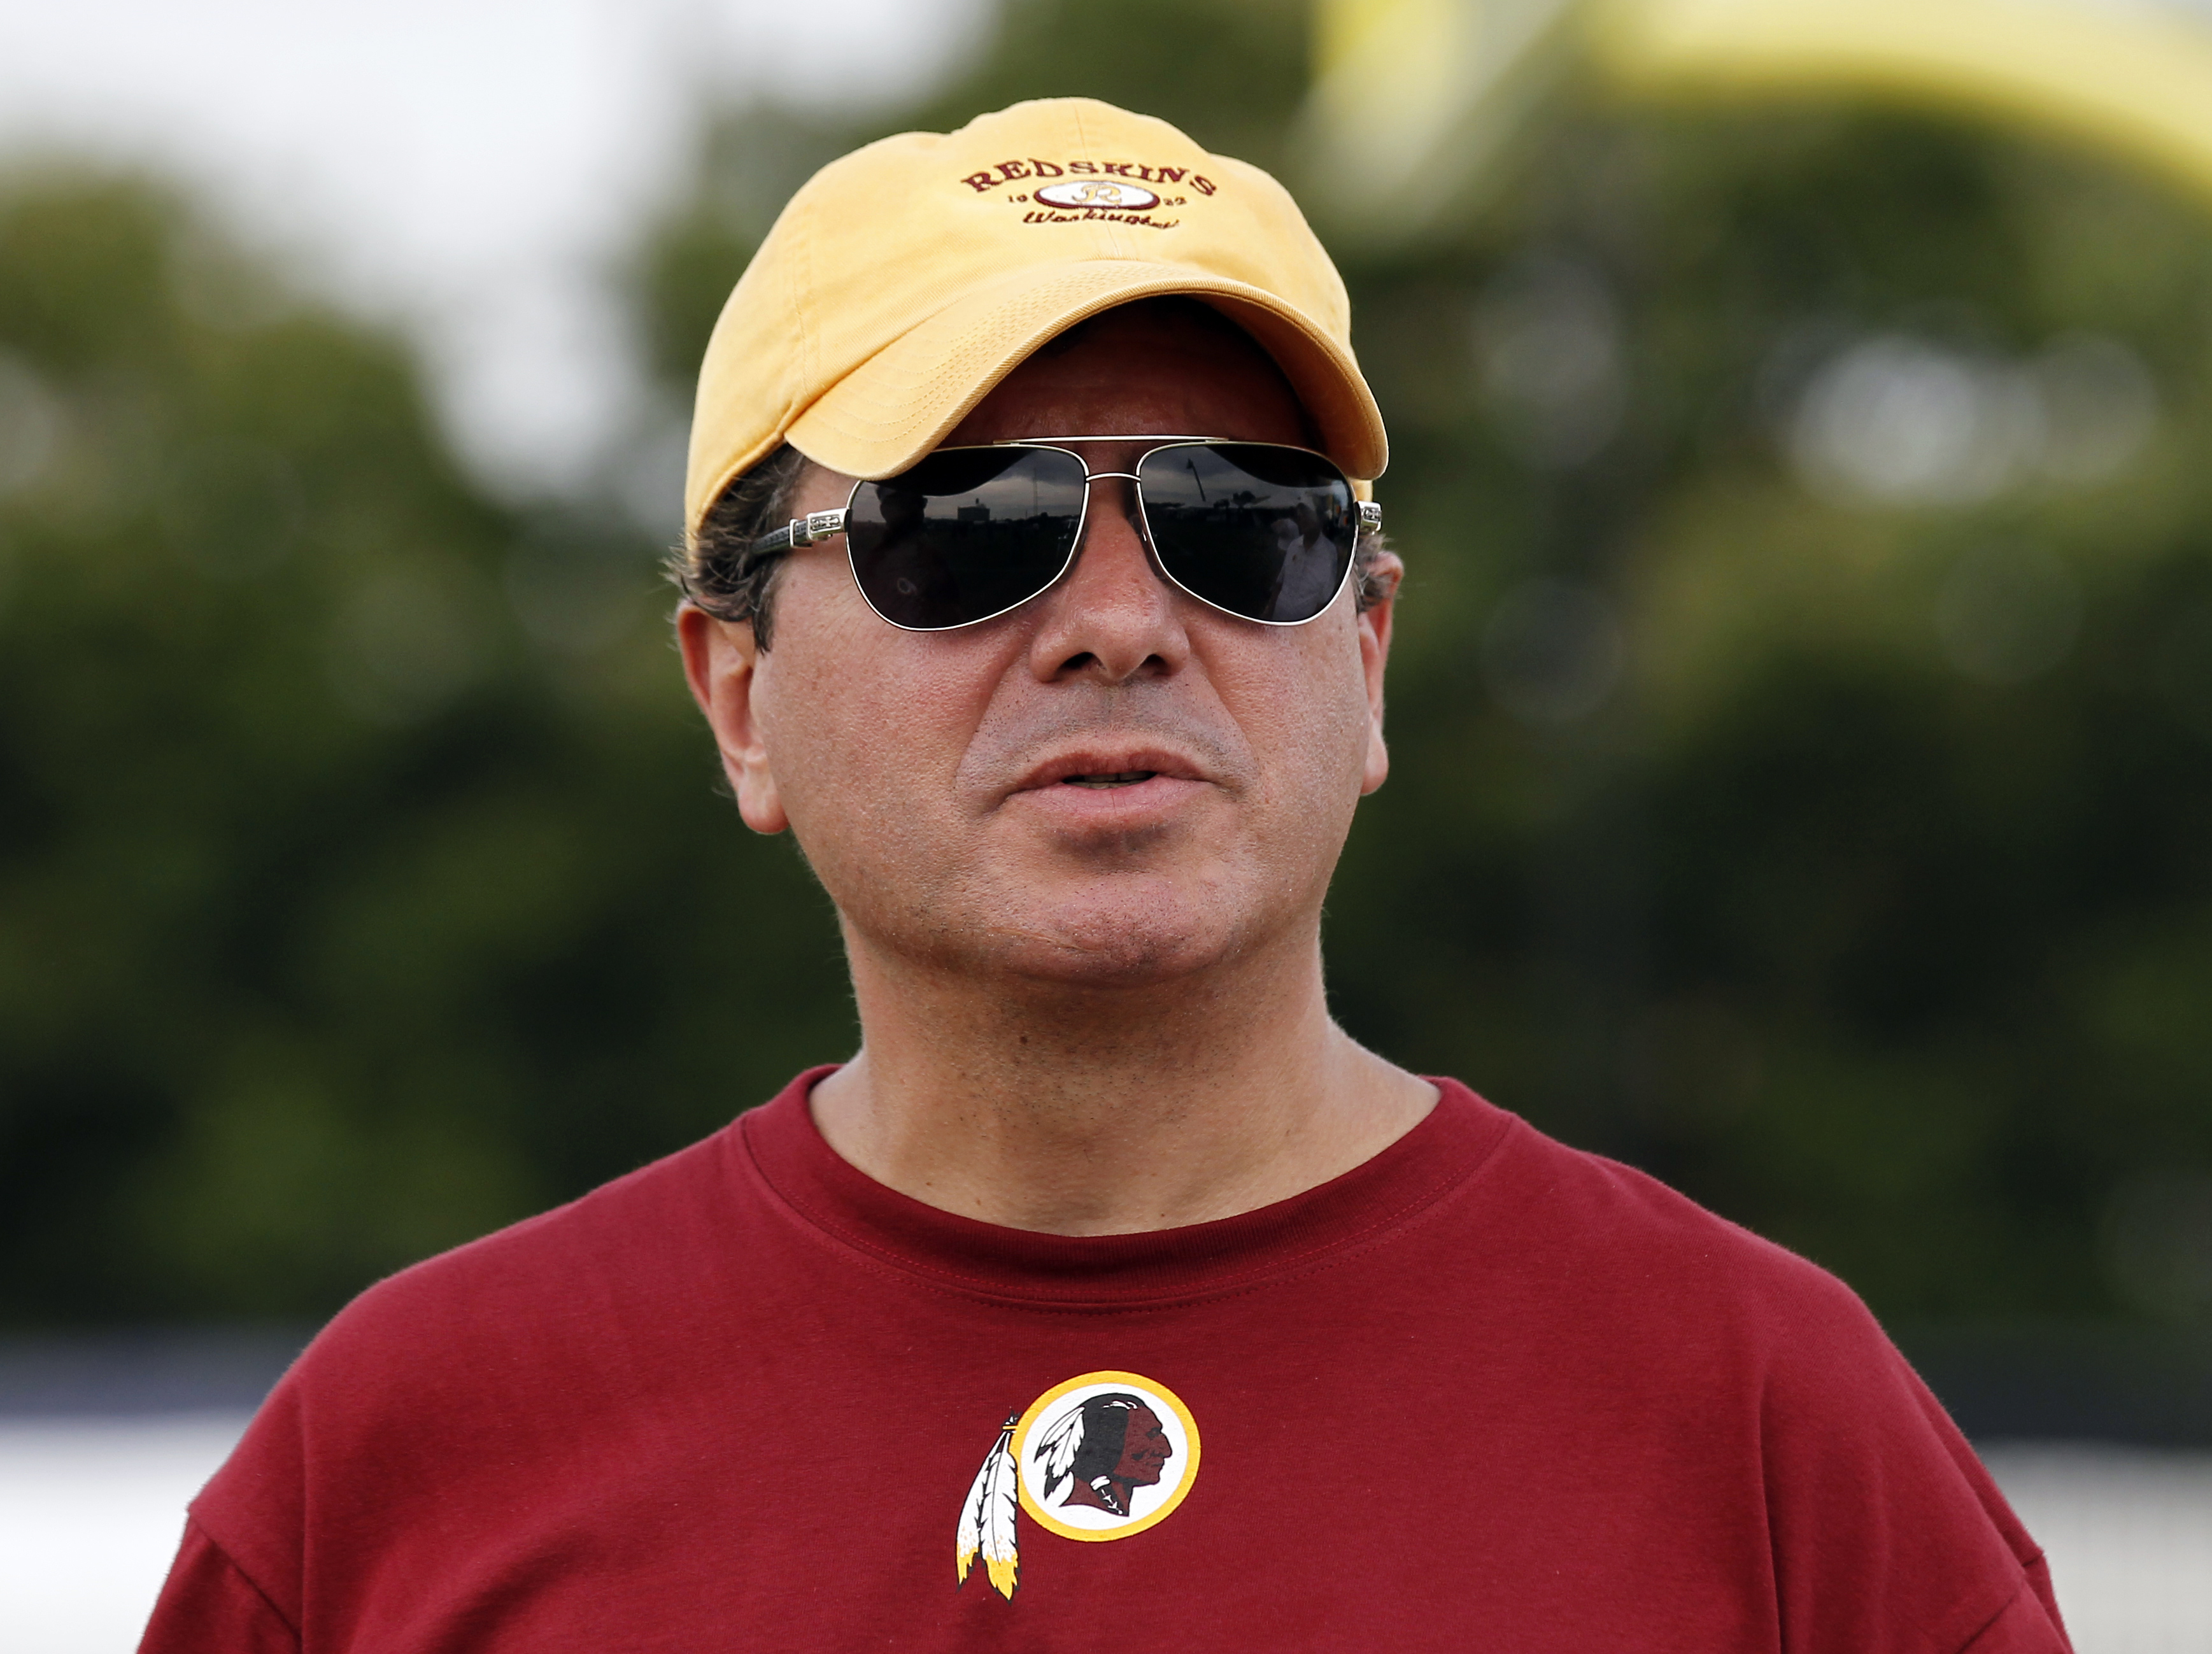 Dan Snyder has allegedly overseen and perhaps condoned a culture of misogyny and harassment as owner of the Washington Football Team. (AP Photo/Alex Brandon, File)